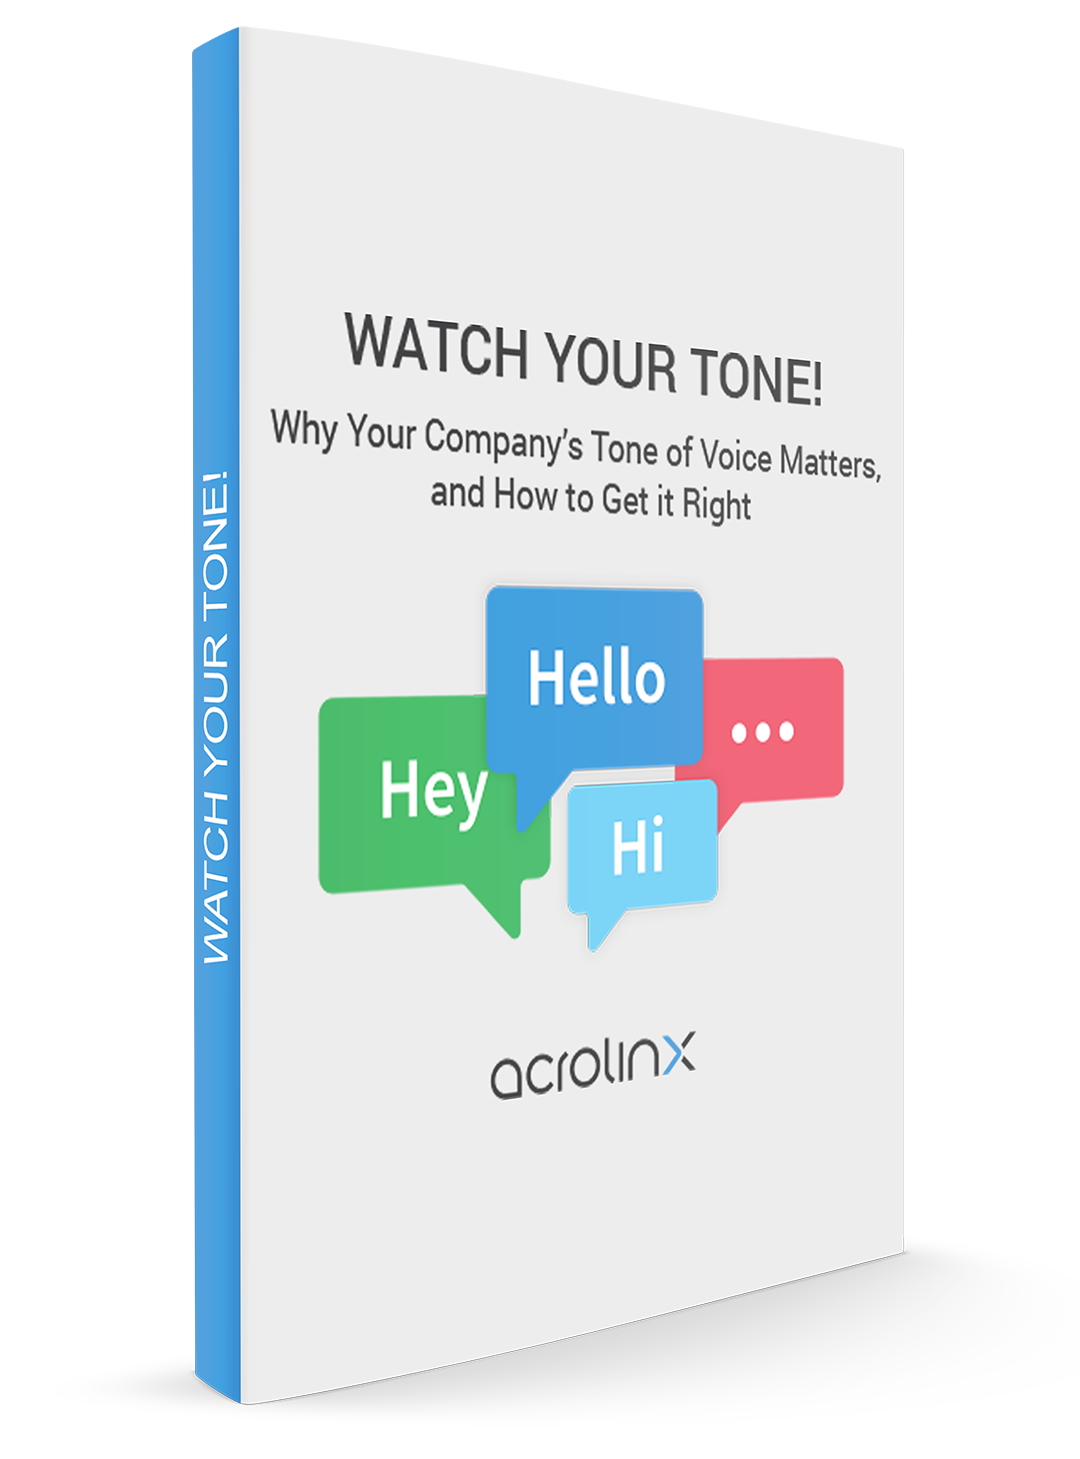 Watch Your Tone of Voice eBook